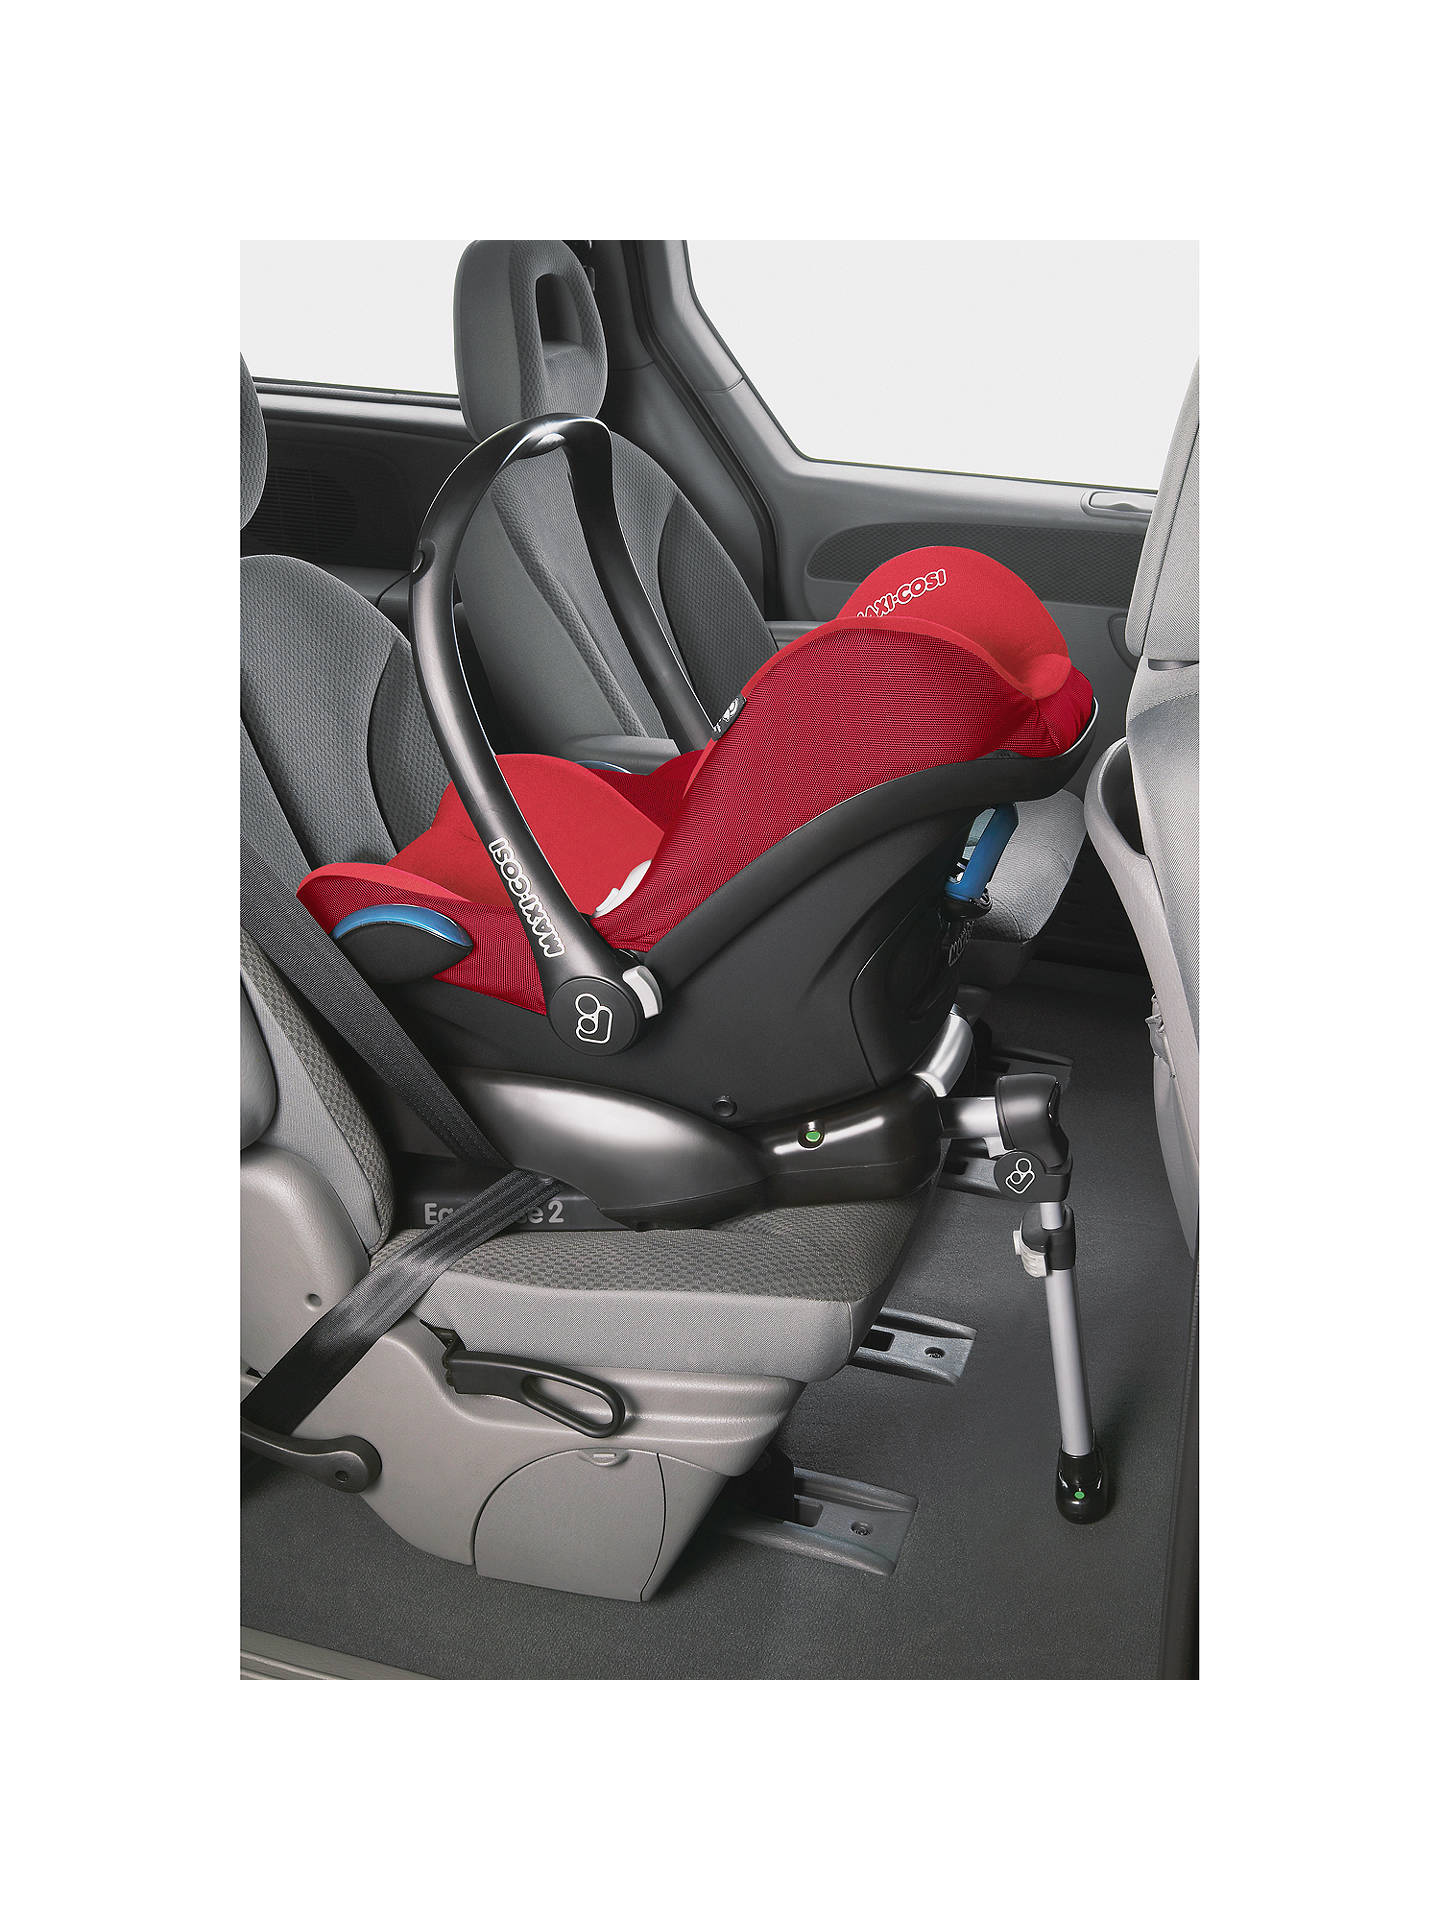 Maxi Cosi Cabriofix Group 0 Baby Car Seat Robin Red At